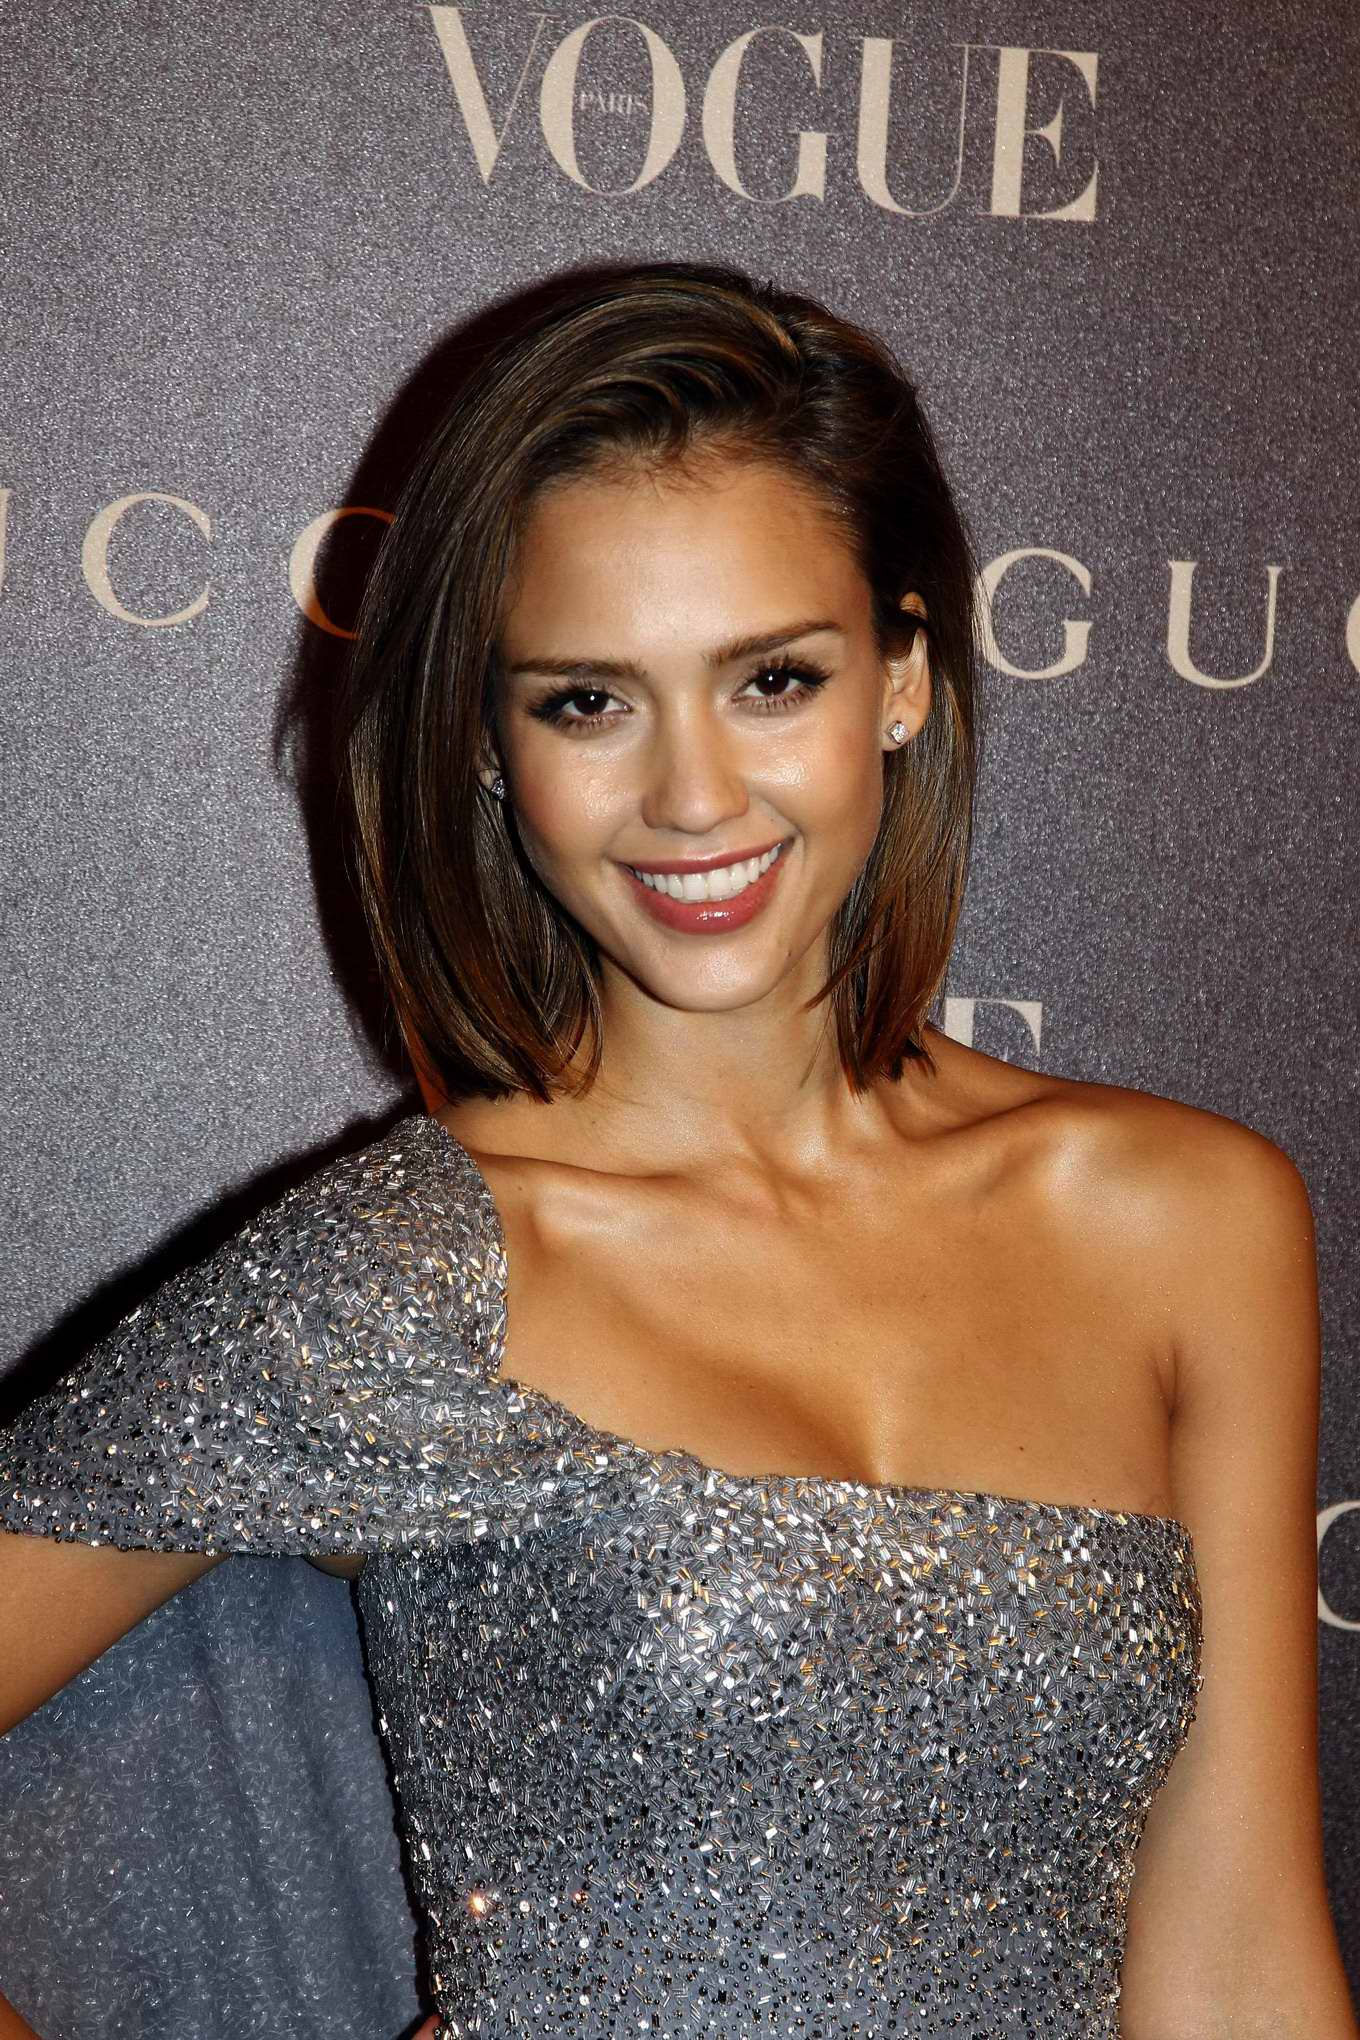 nude celebrities daily celebrity galleries with thousands of free nude ...: www.celeb-for-free.com/pics/celeb2057/jessica_alba_foto...